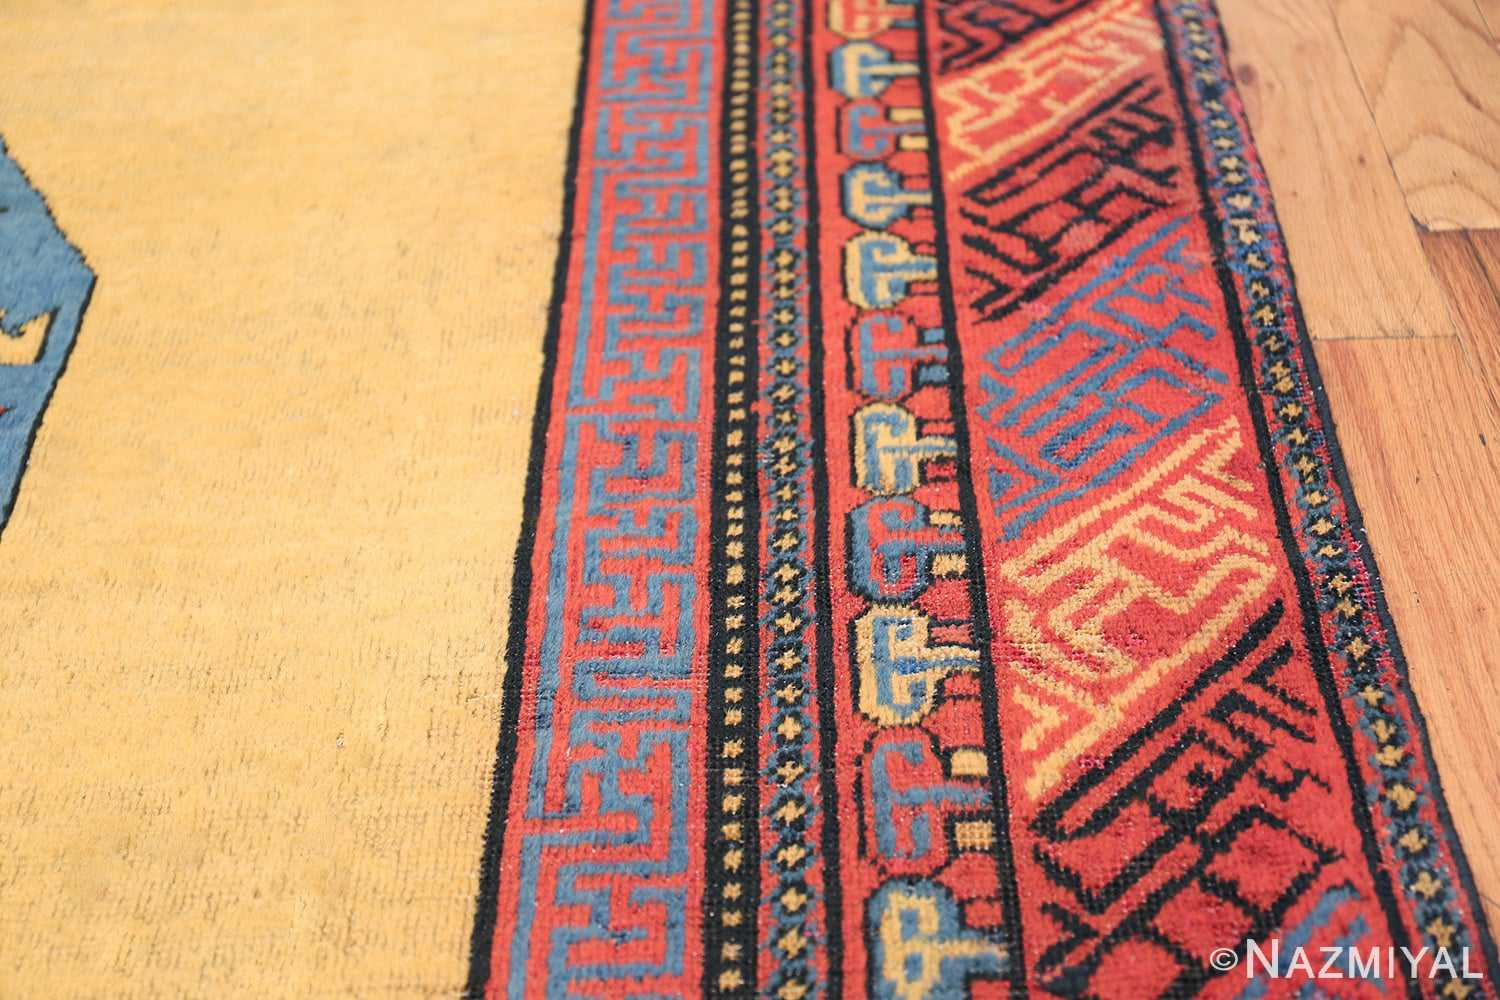 Small Room Size Funky and Tribal Antique Khotan Rug 48784 Border Design Nazmiyal